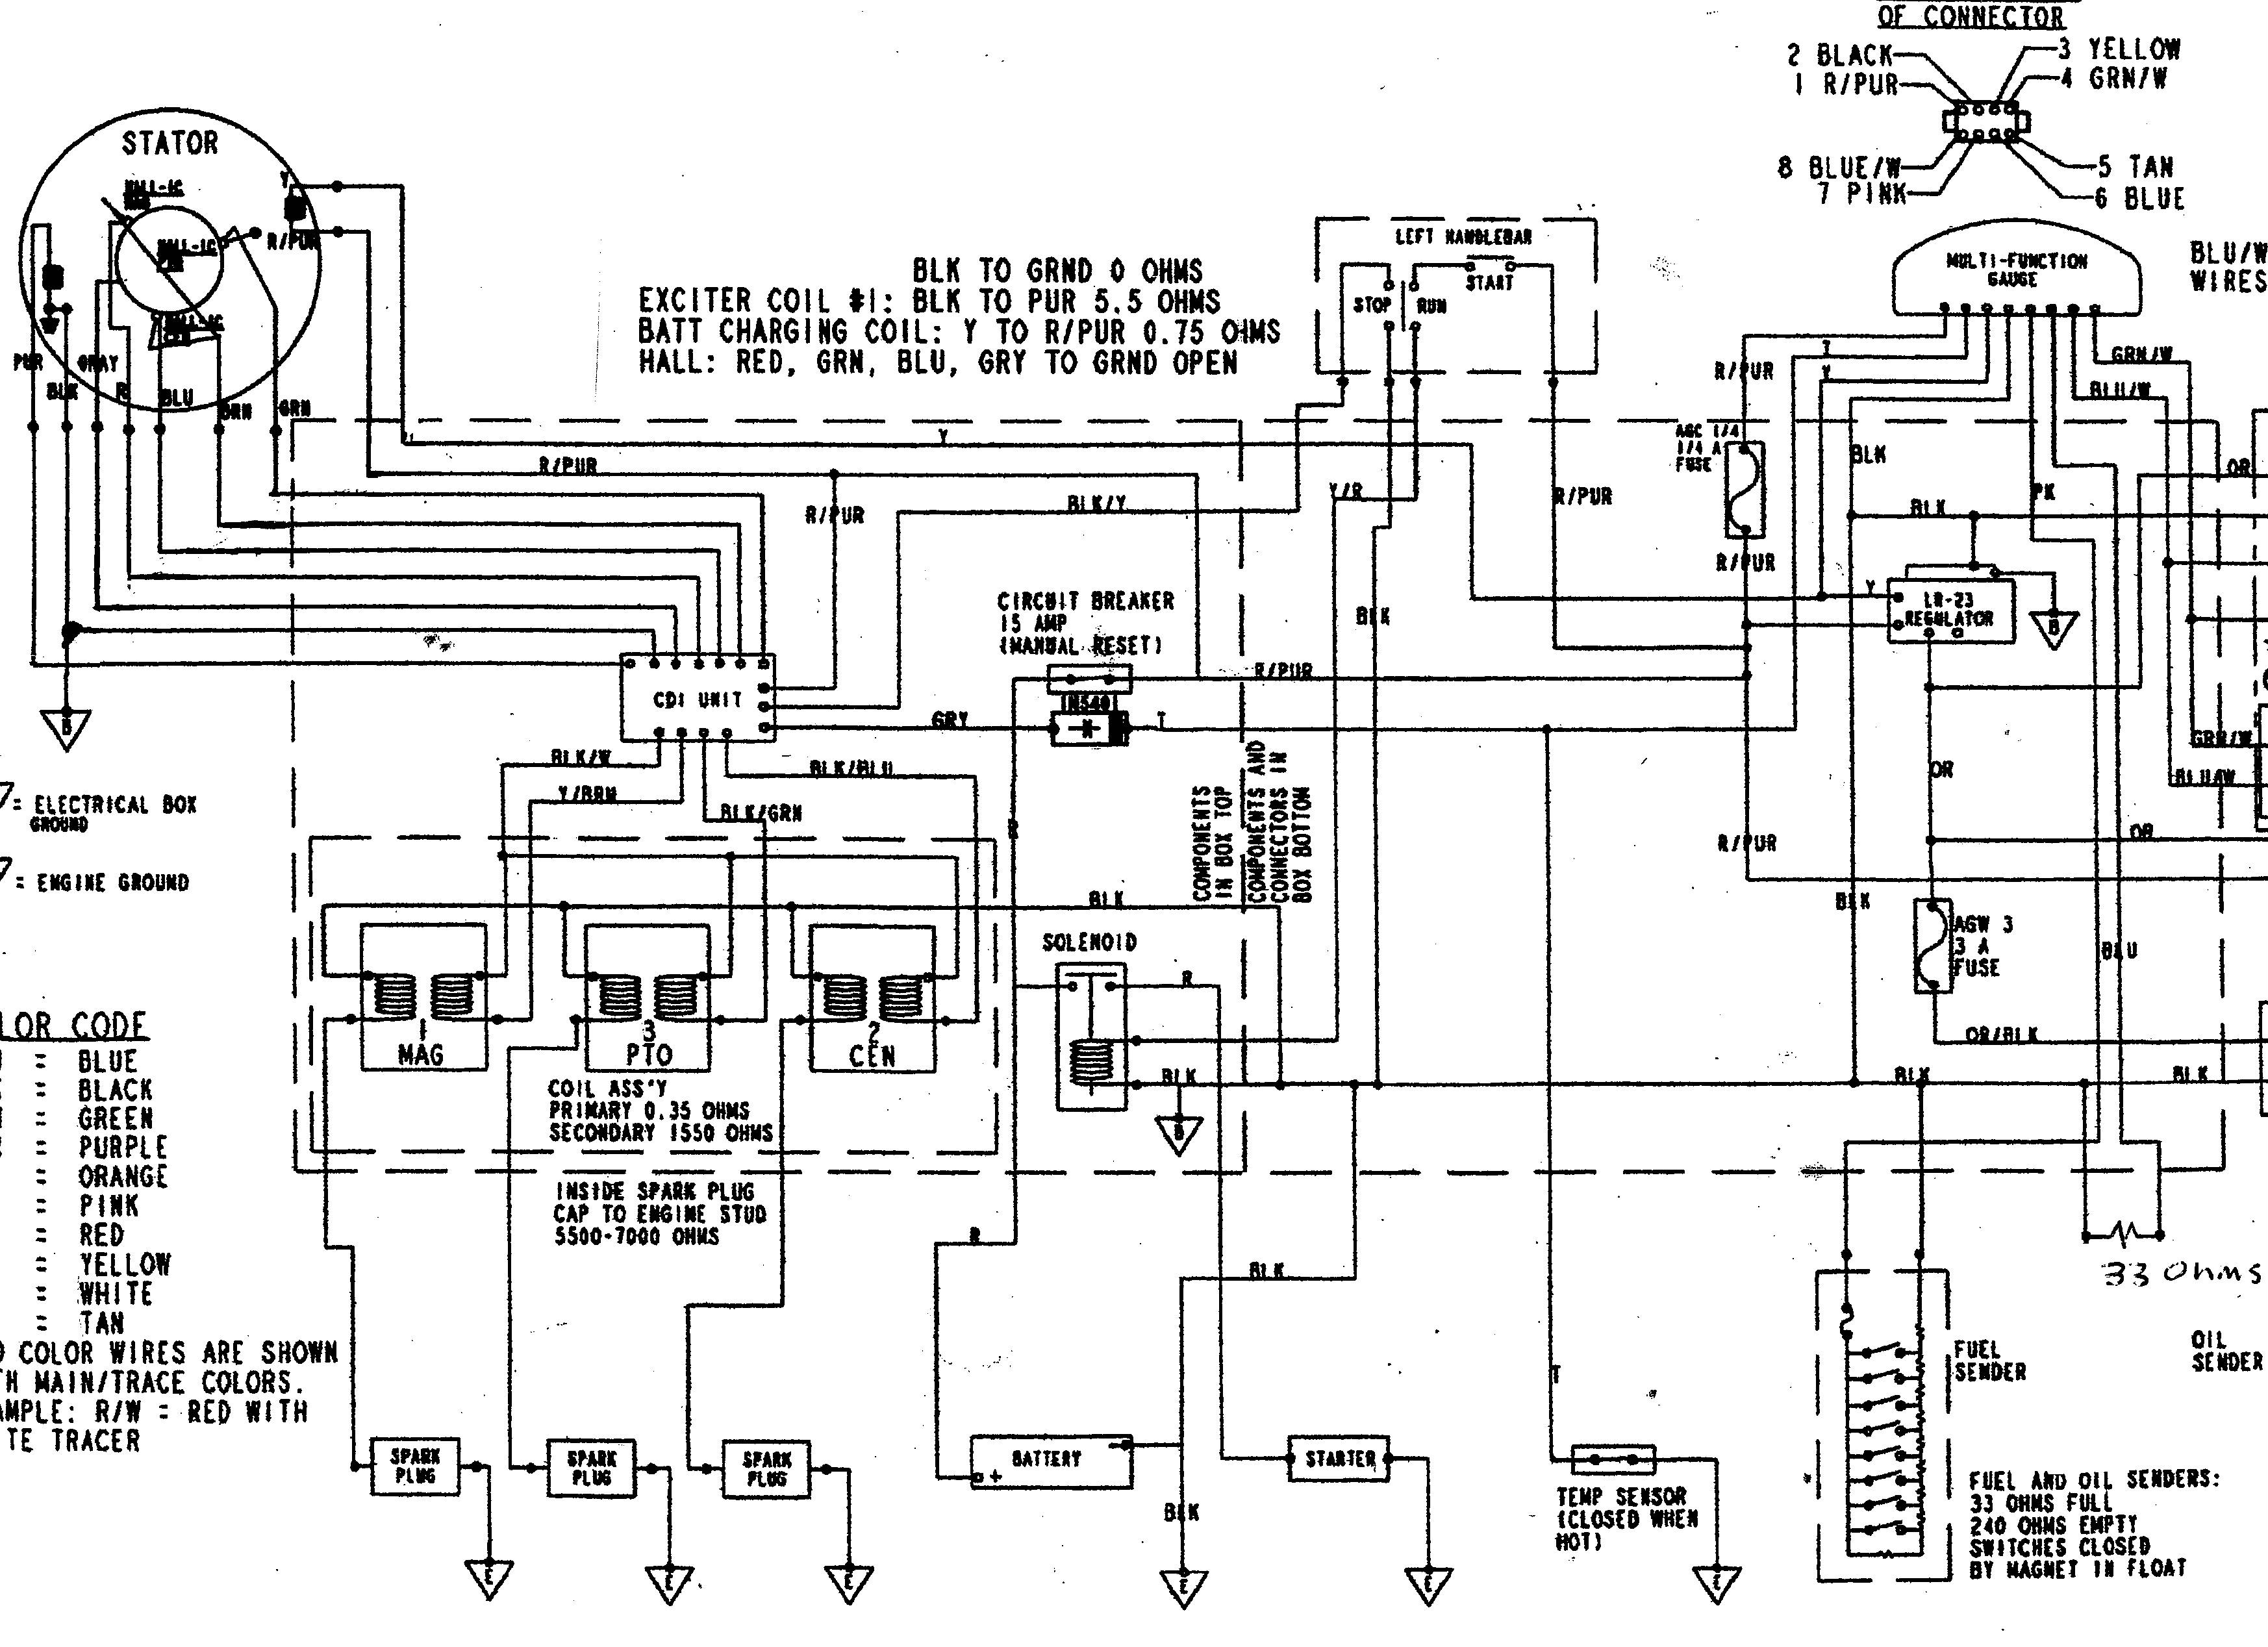 1978 Yamaha 750 Wiring Diagram 1978 Yamaha 750 Exhaust